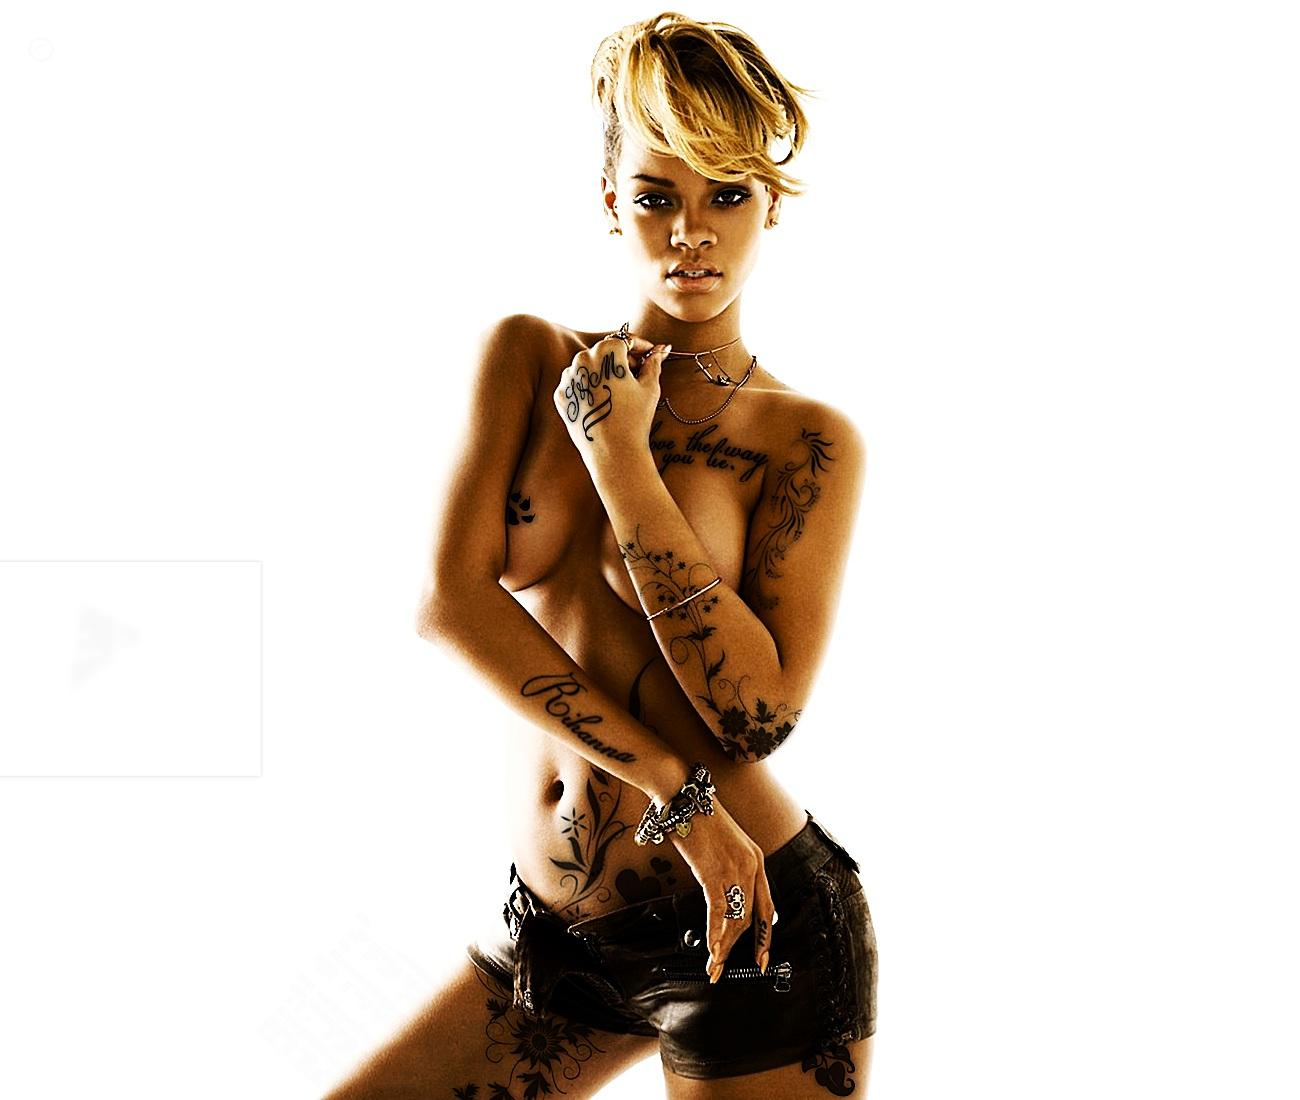 Keyshia Cole Wallpapers